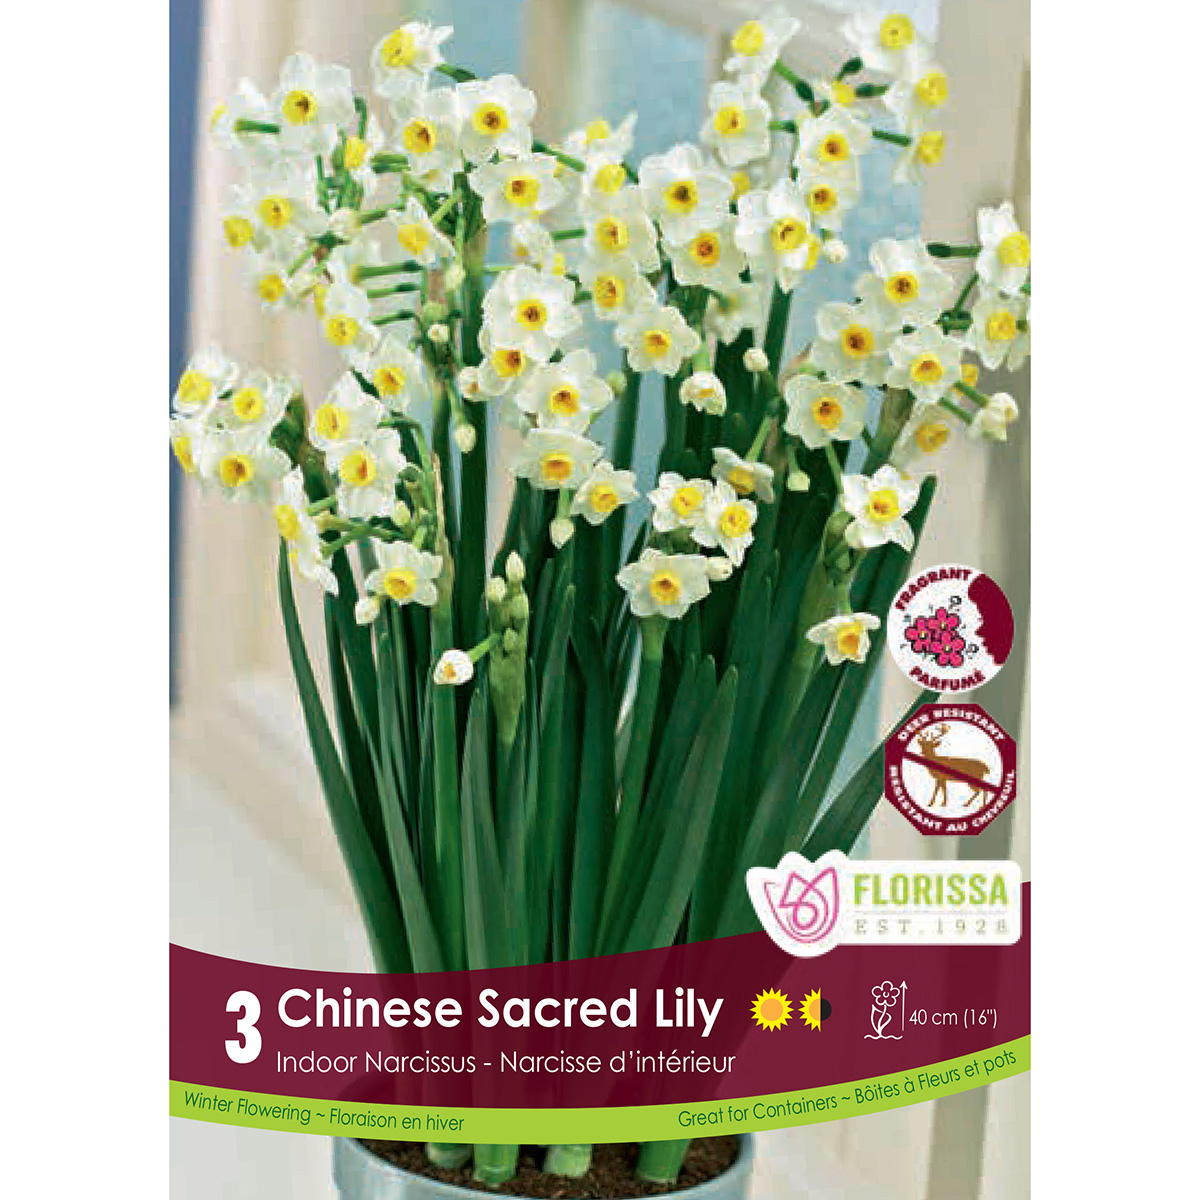 Narcissus 'Chinese Sacred Lily' Bulbs